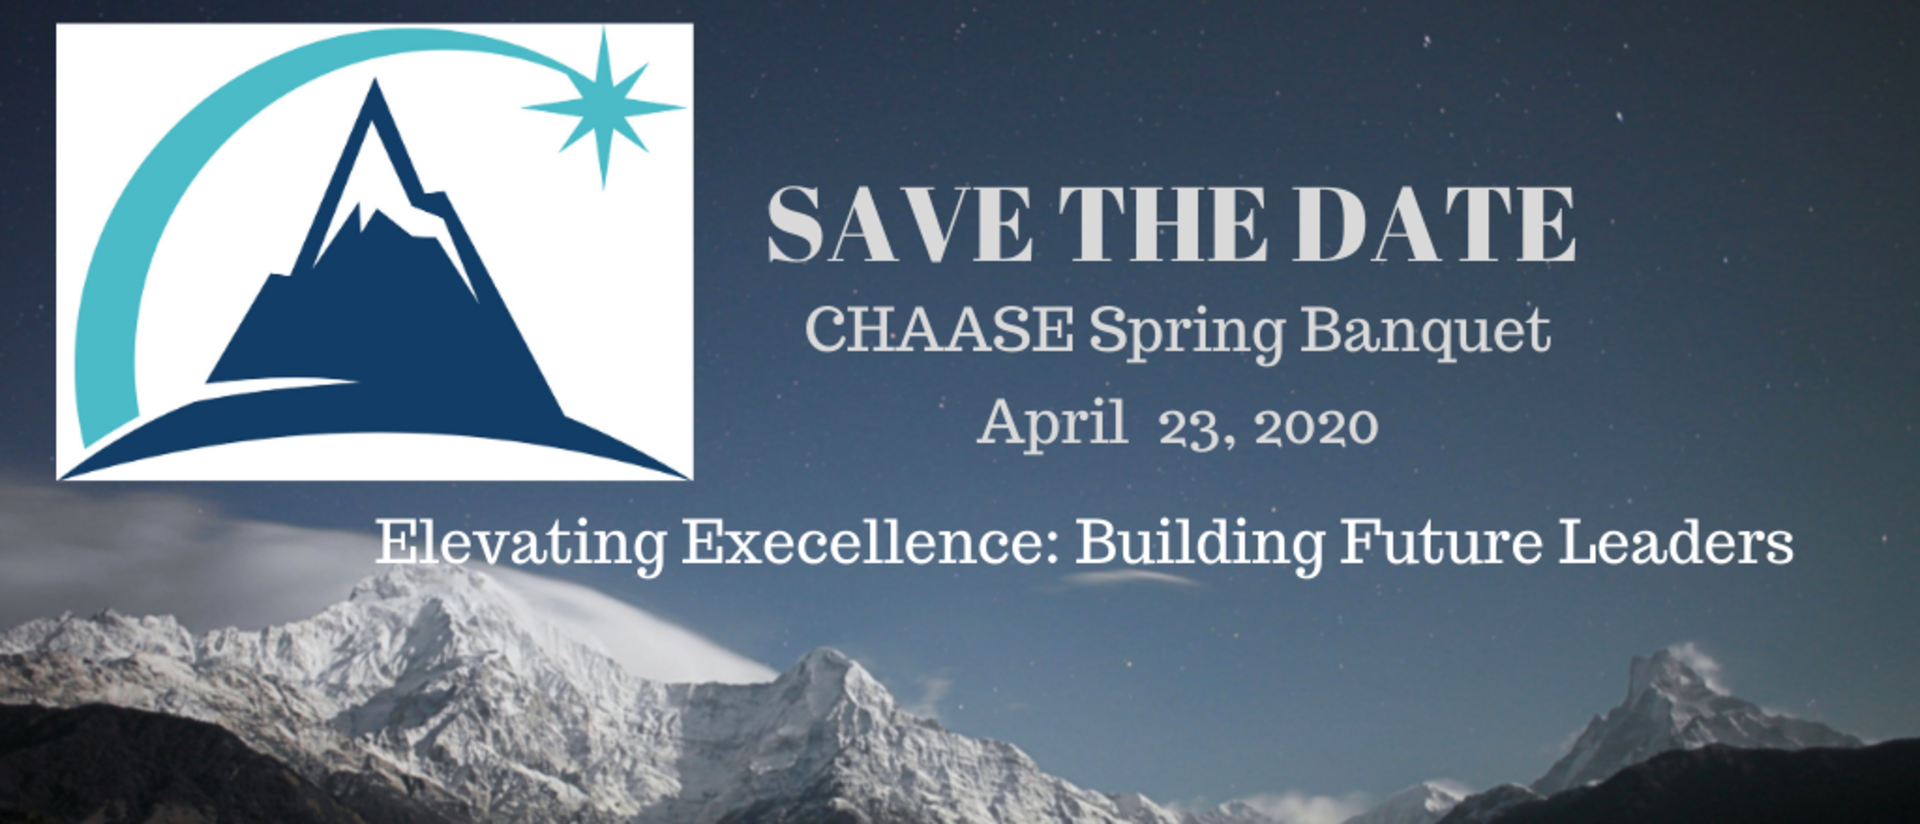 CHAASE Save the Date 2020 Spring Banquet